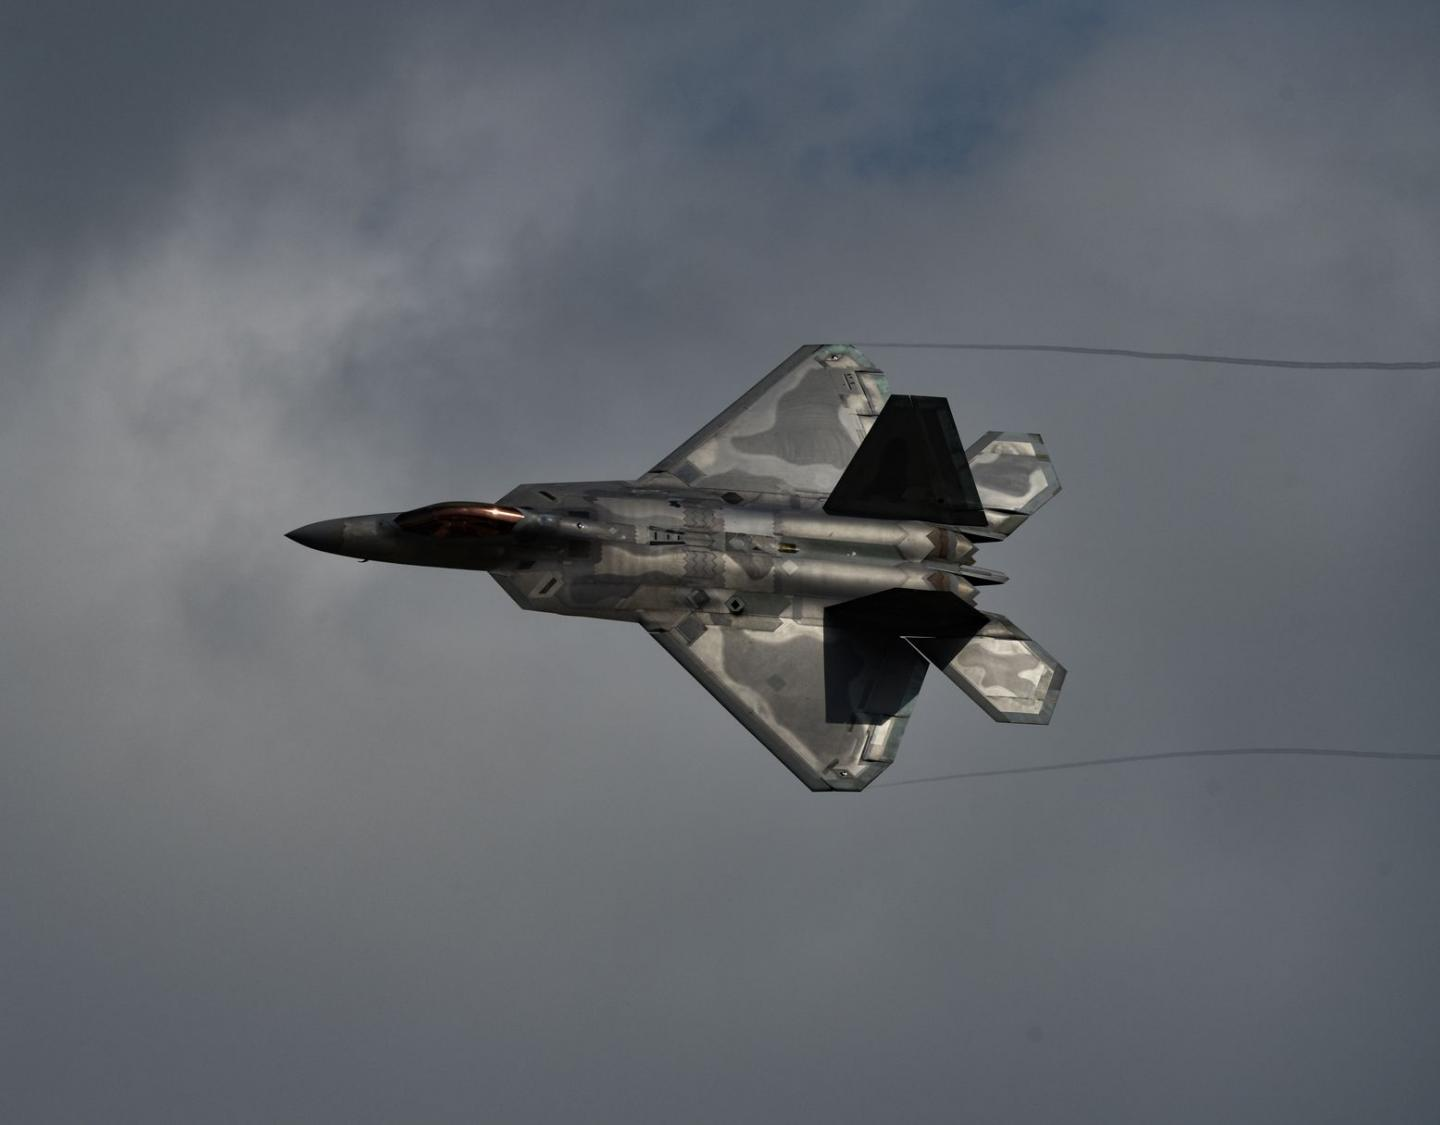 The Air Force Has Sent Stealth F-22 Raptors to Qatar to Deter Iran